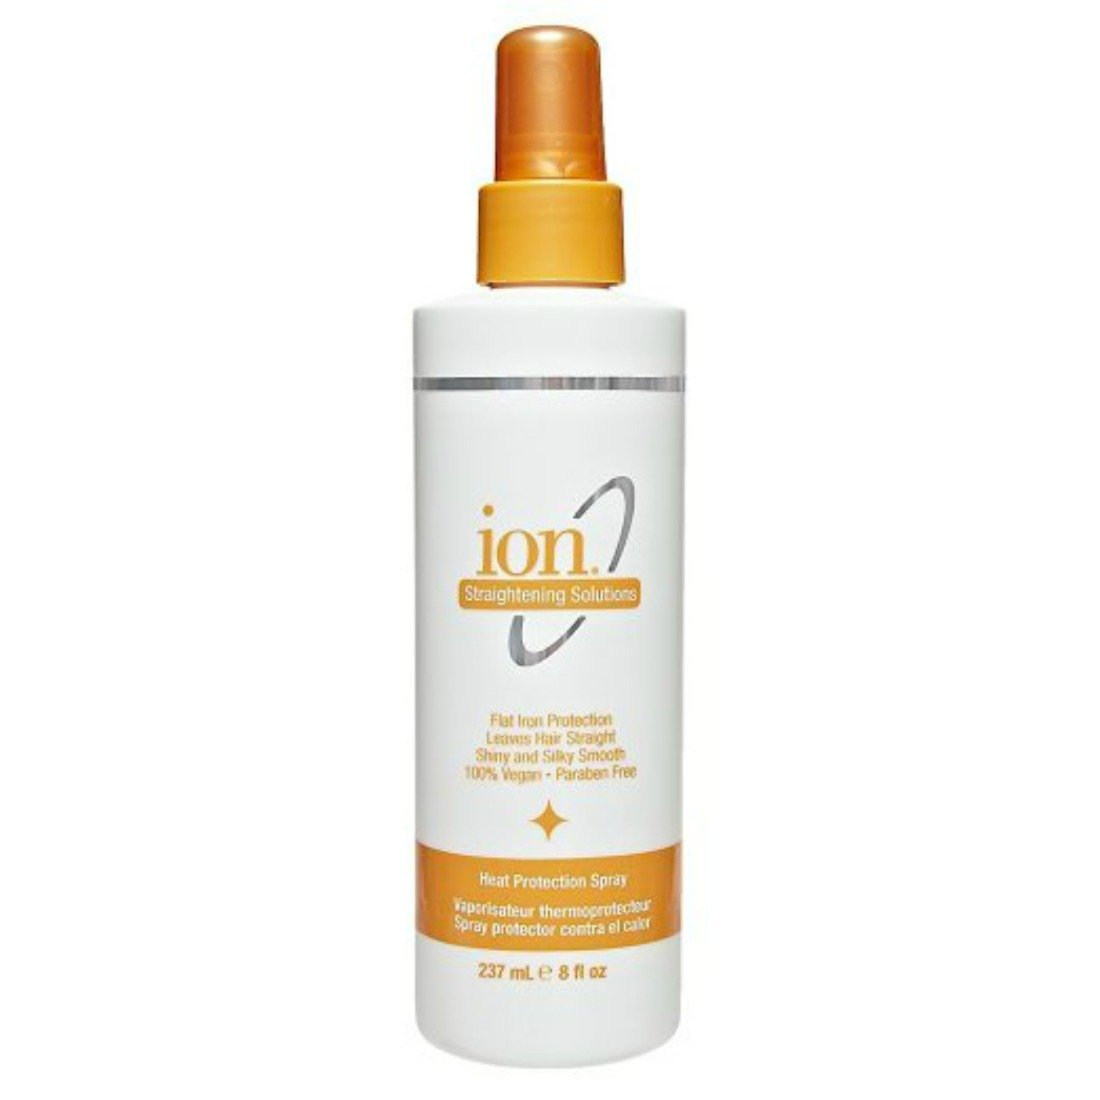 Best Heat Protectant - Heat Protection Spray Reviews - BaumBeauty.com